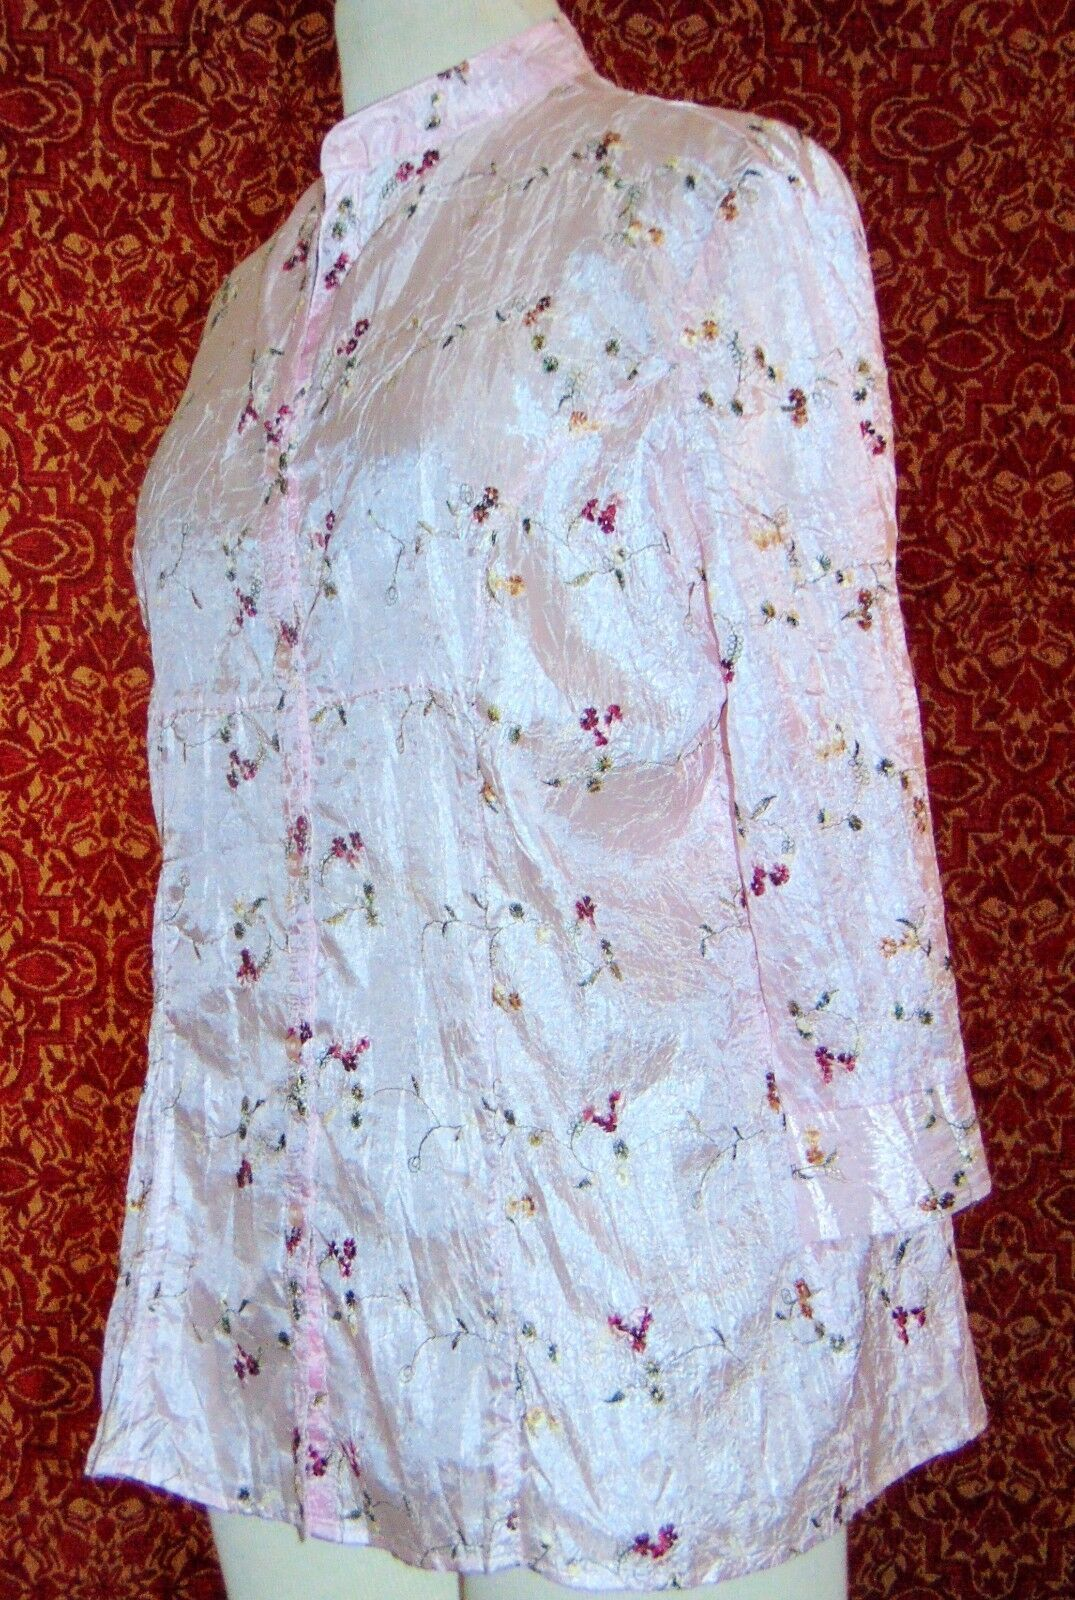 CLAUDIA RICHARD pink floral polyester 3/4 sleeve button blouse M (T43-04E9G) image 3